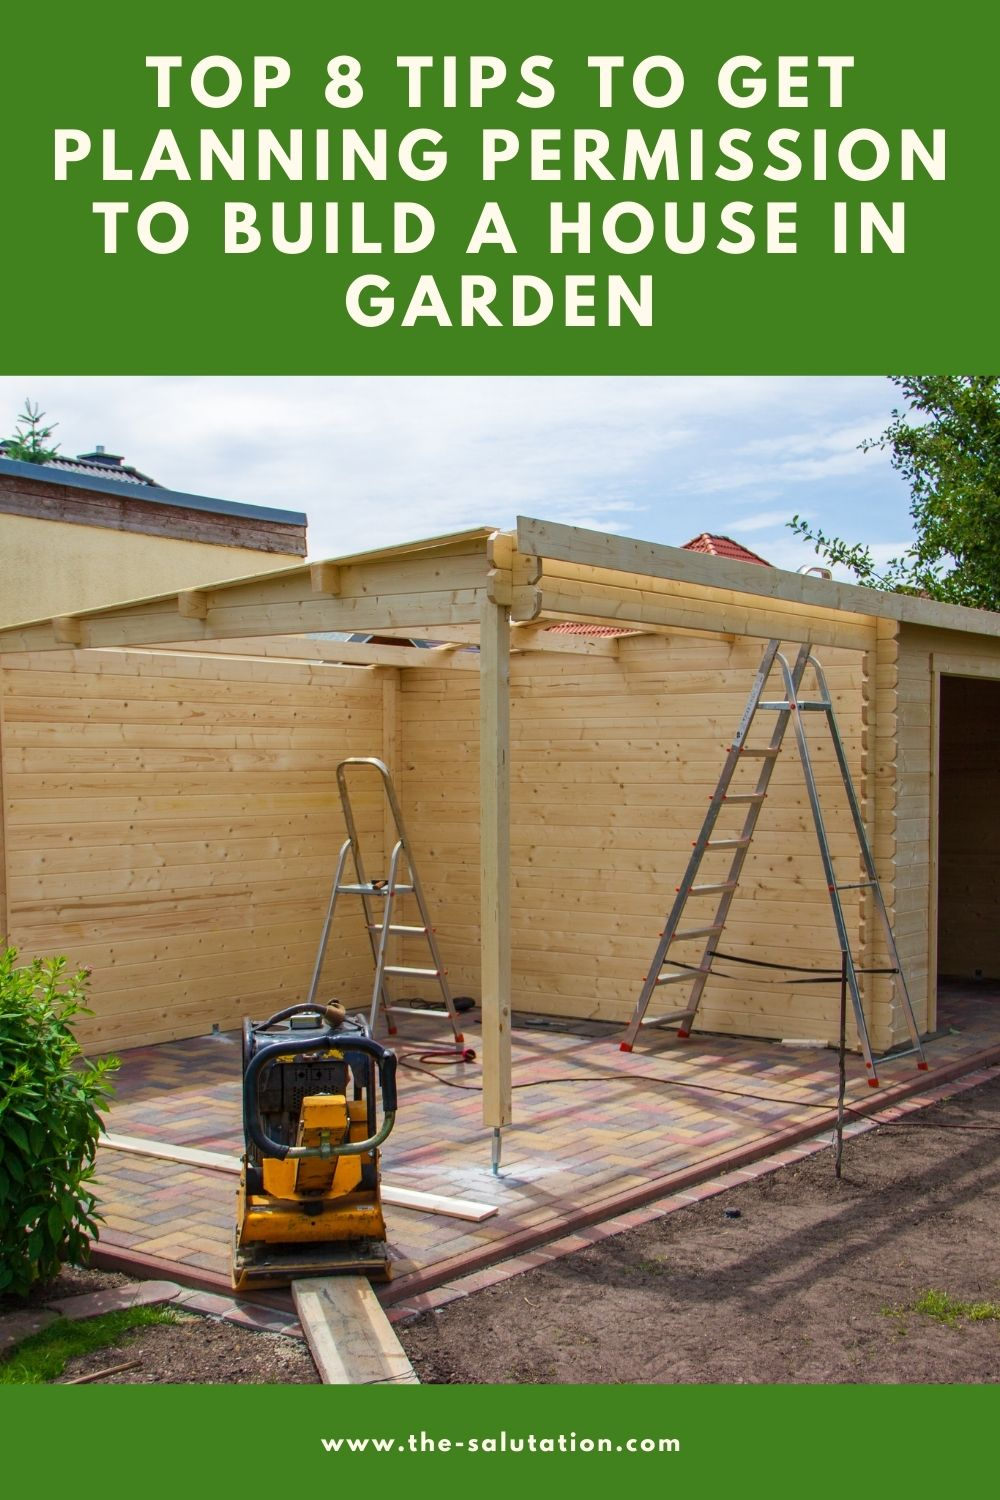 Top 8 Tips to Get Planning Permission to Build a House in Garden 1